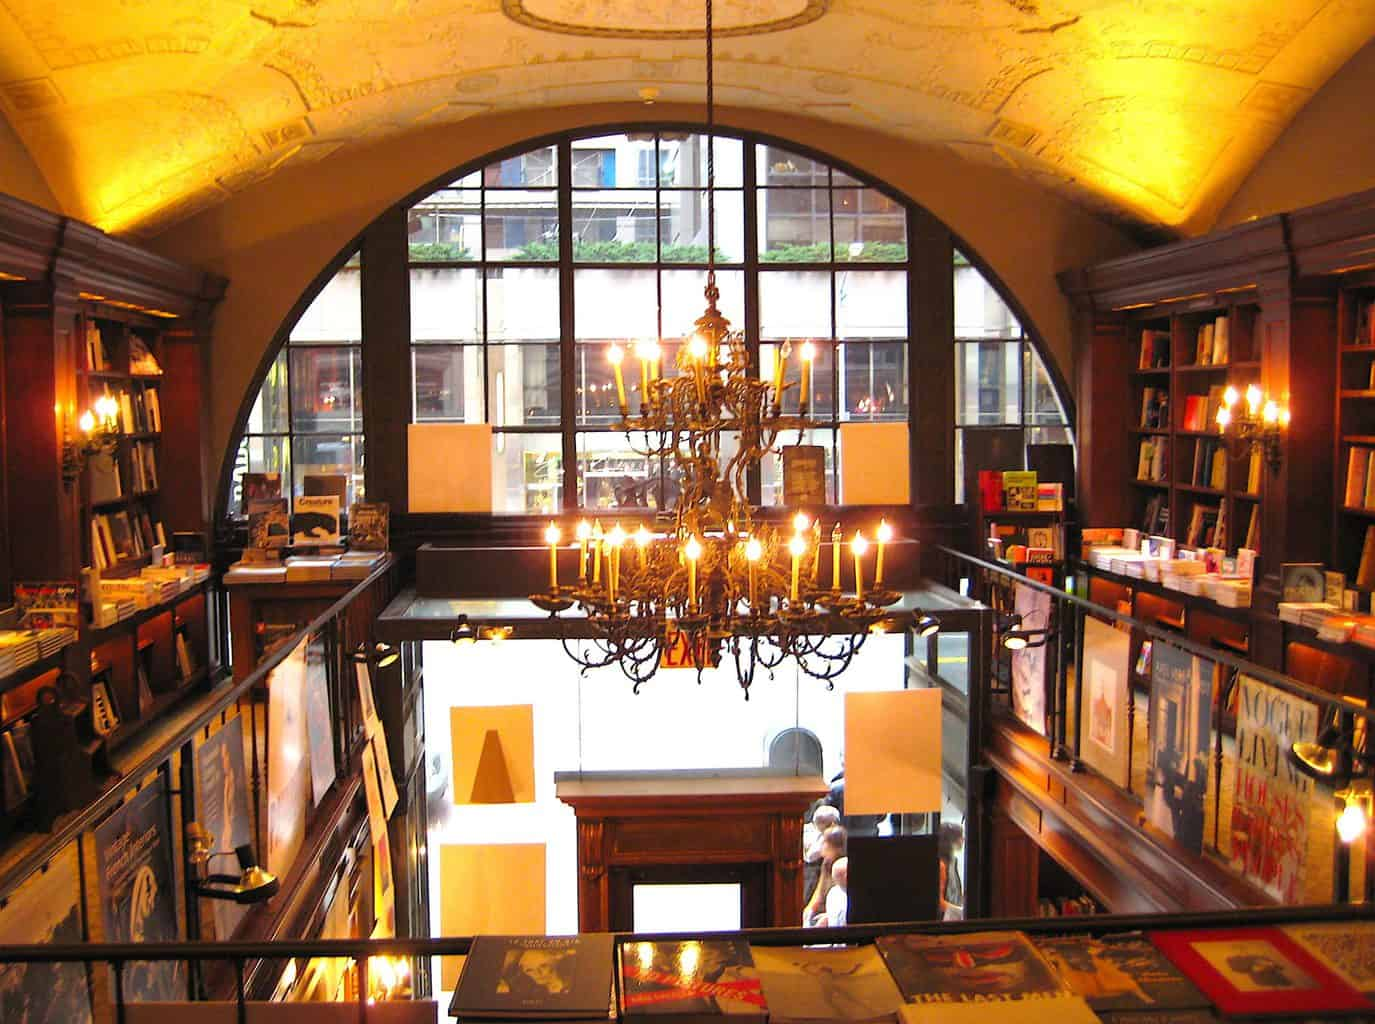 The stunning, chandelier adorned interiors of Rizzoli bookstore in Manhattan. Image taken by Angie Walls on Flickr.com.